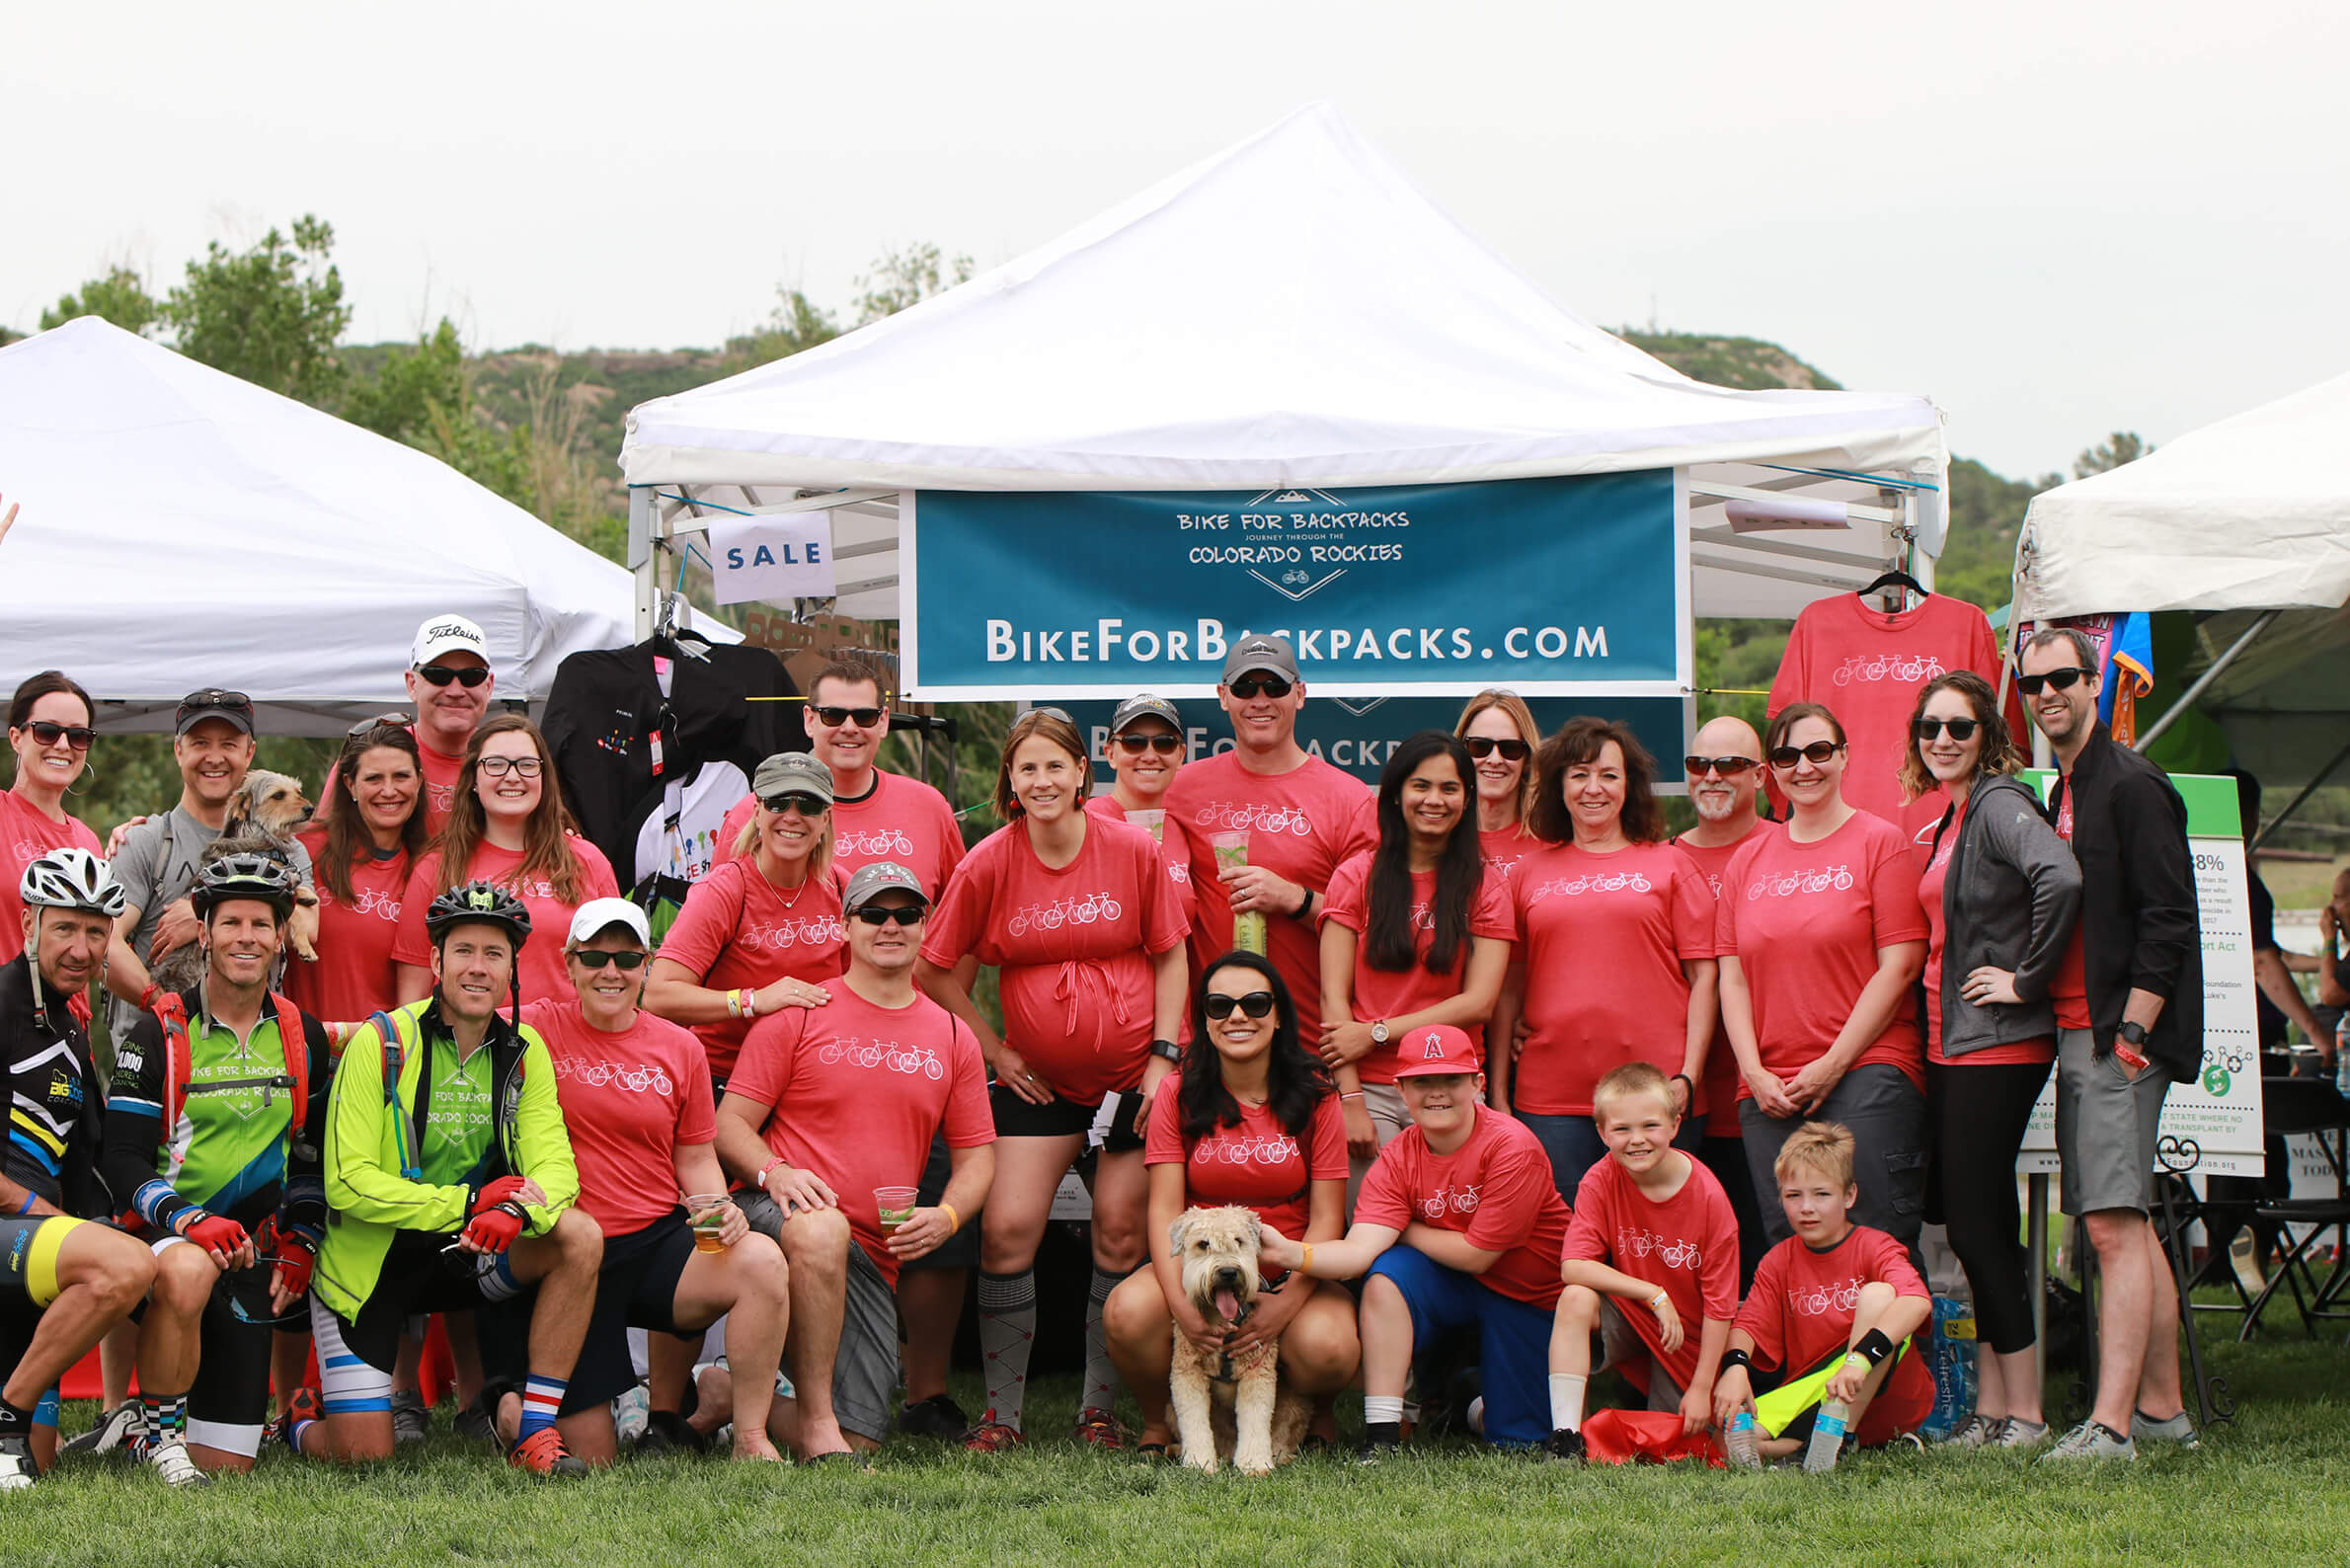 Come join The CE Shop Foundation team as we ride and volunteer at the 2019 Elephant Rock on June 2nd to eliminate childhood hunger